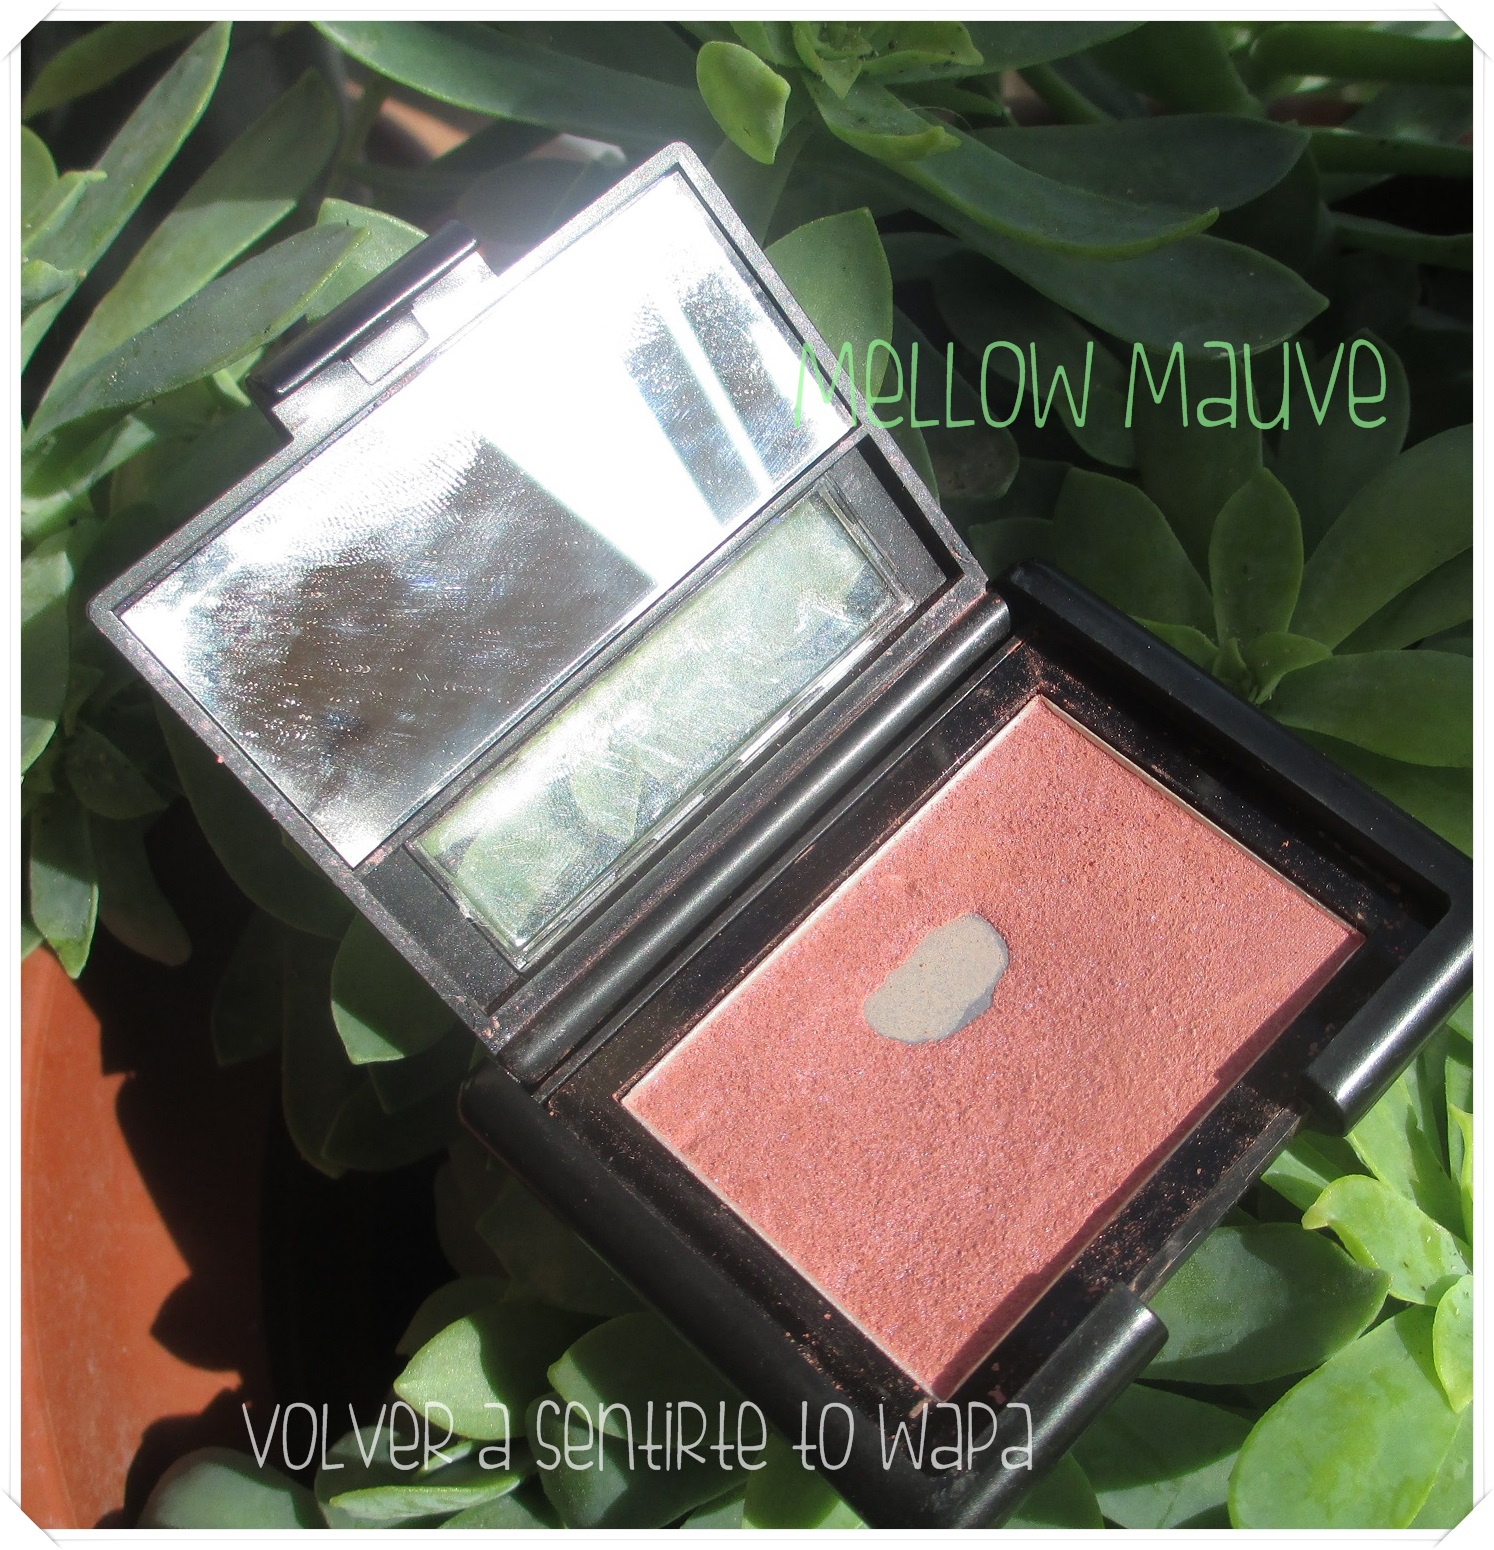 Coloretes de elf - Mellow Mauve